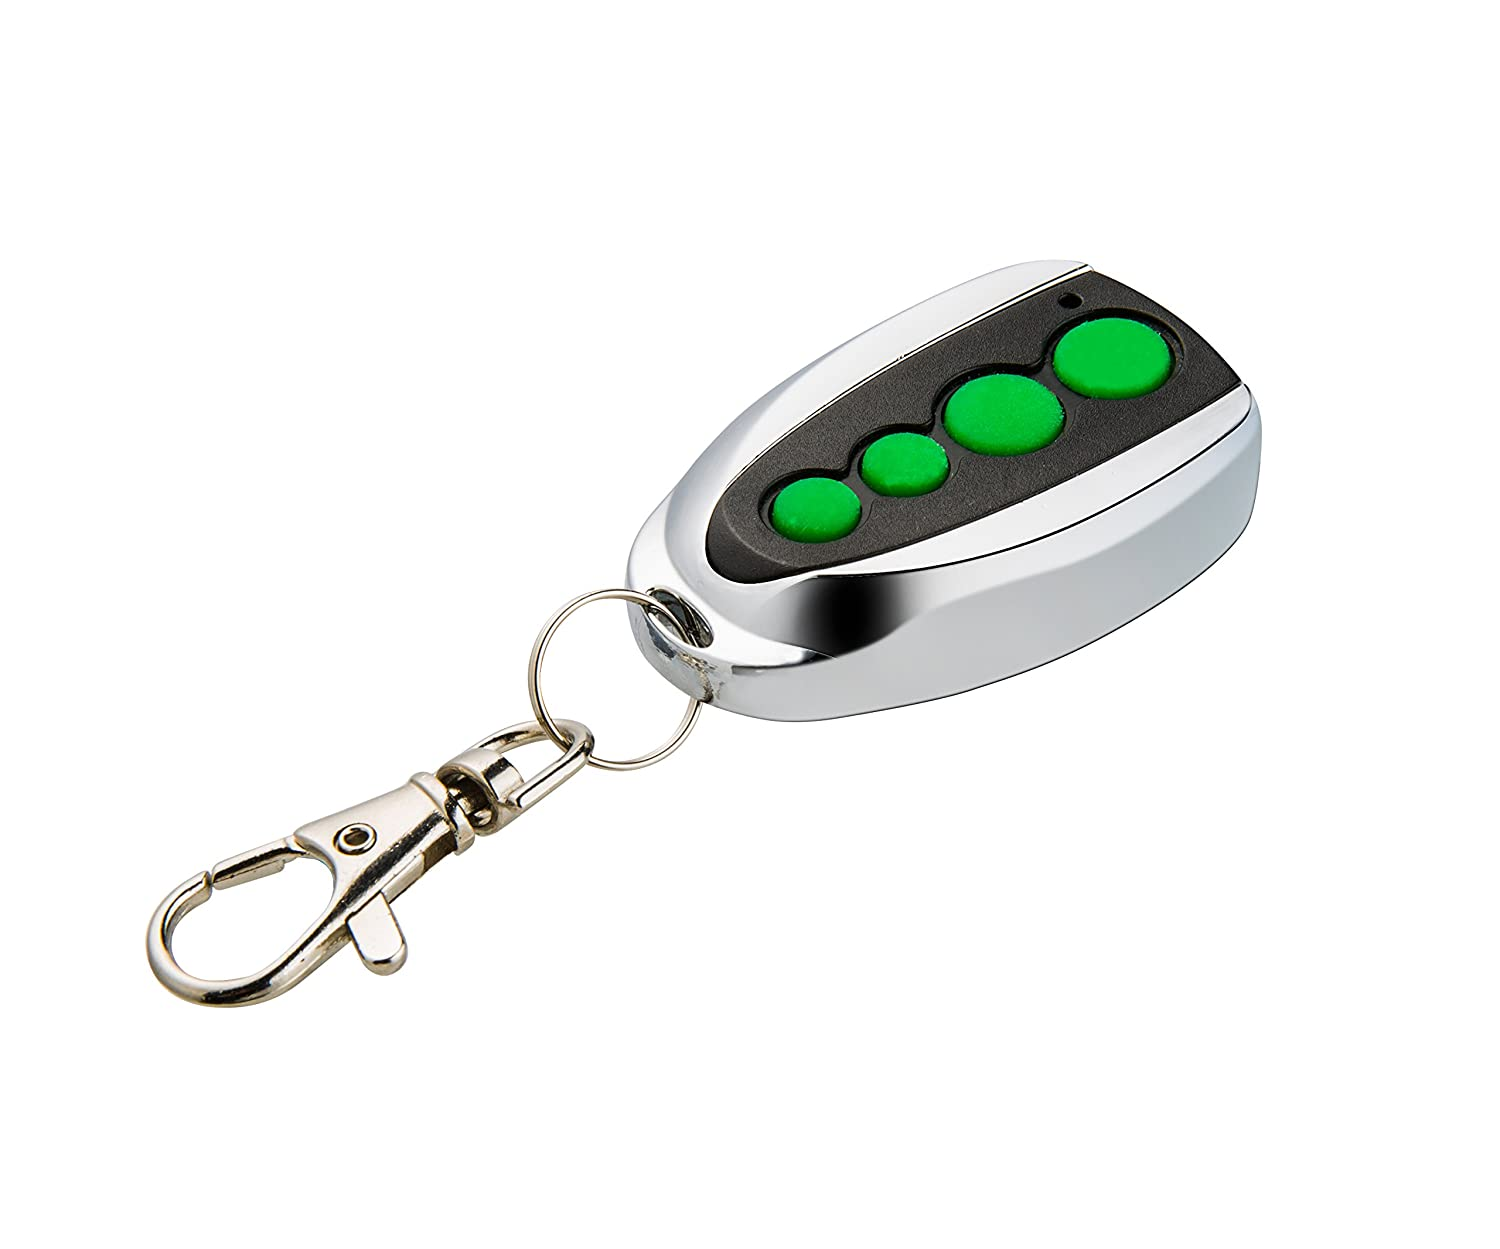 TOPENS 2 pcs Entry Transmitter Remote Control Pack (M12)